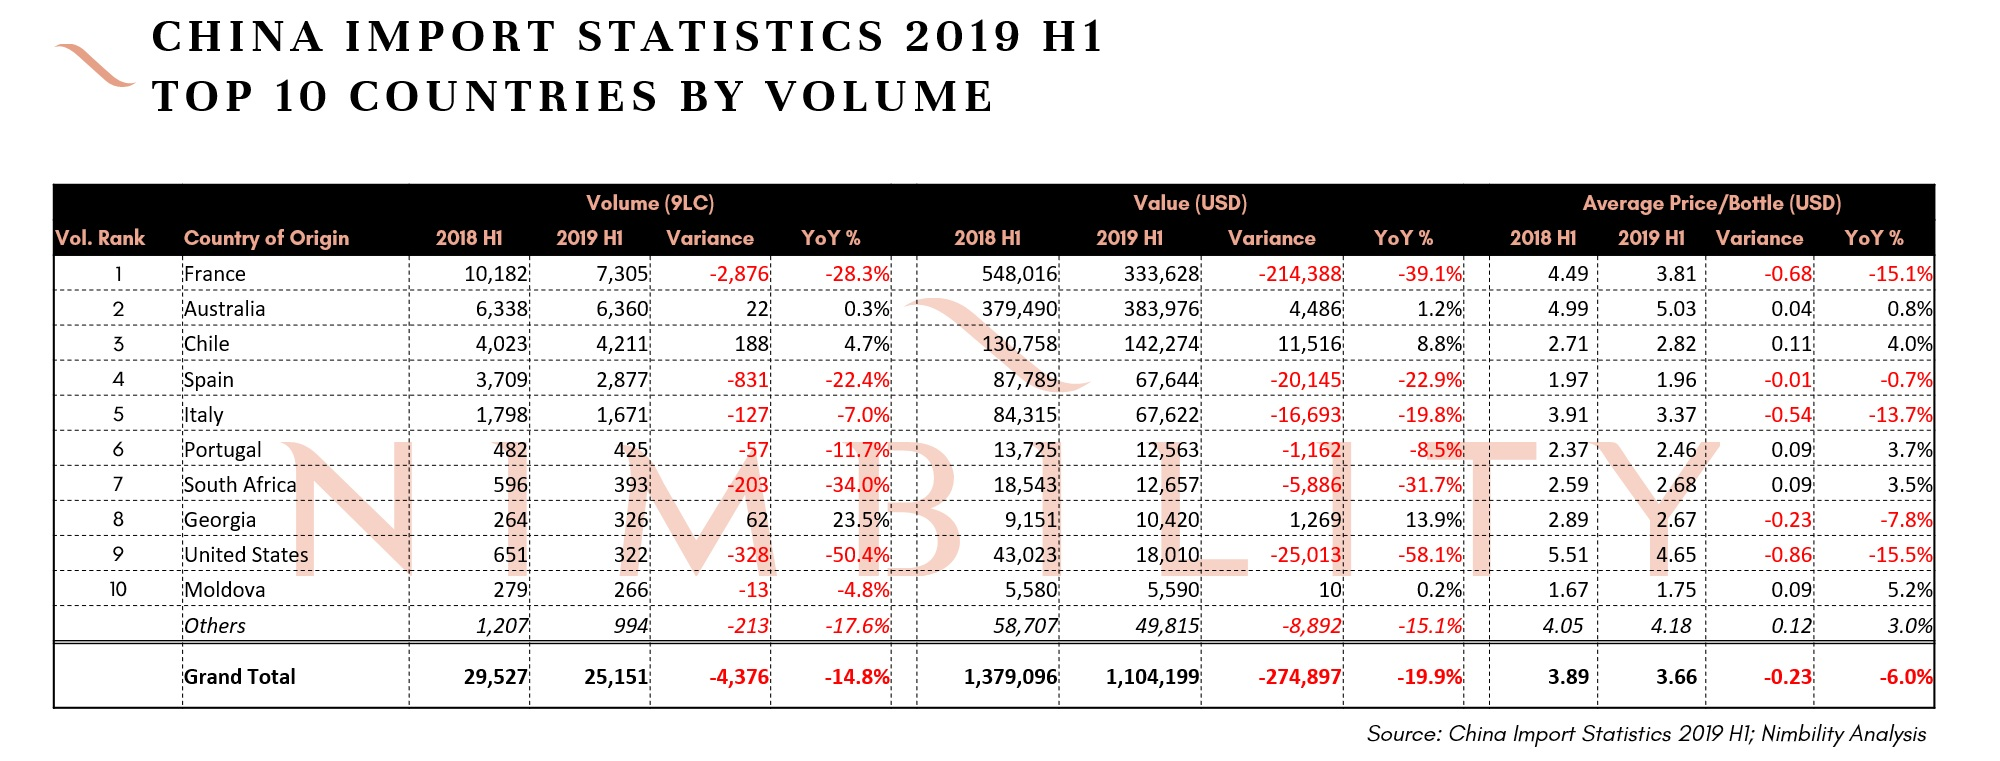 CHINA+IMPORT+STATISTICS+2019+H1+-+Top+10+countries+by+volume.jpg